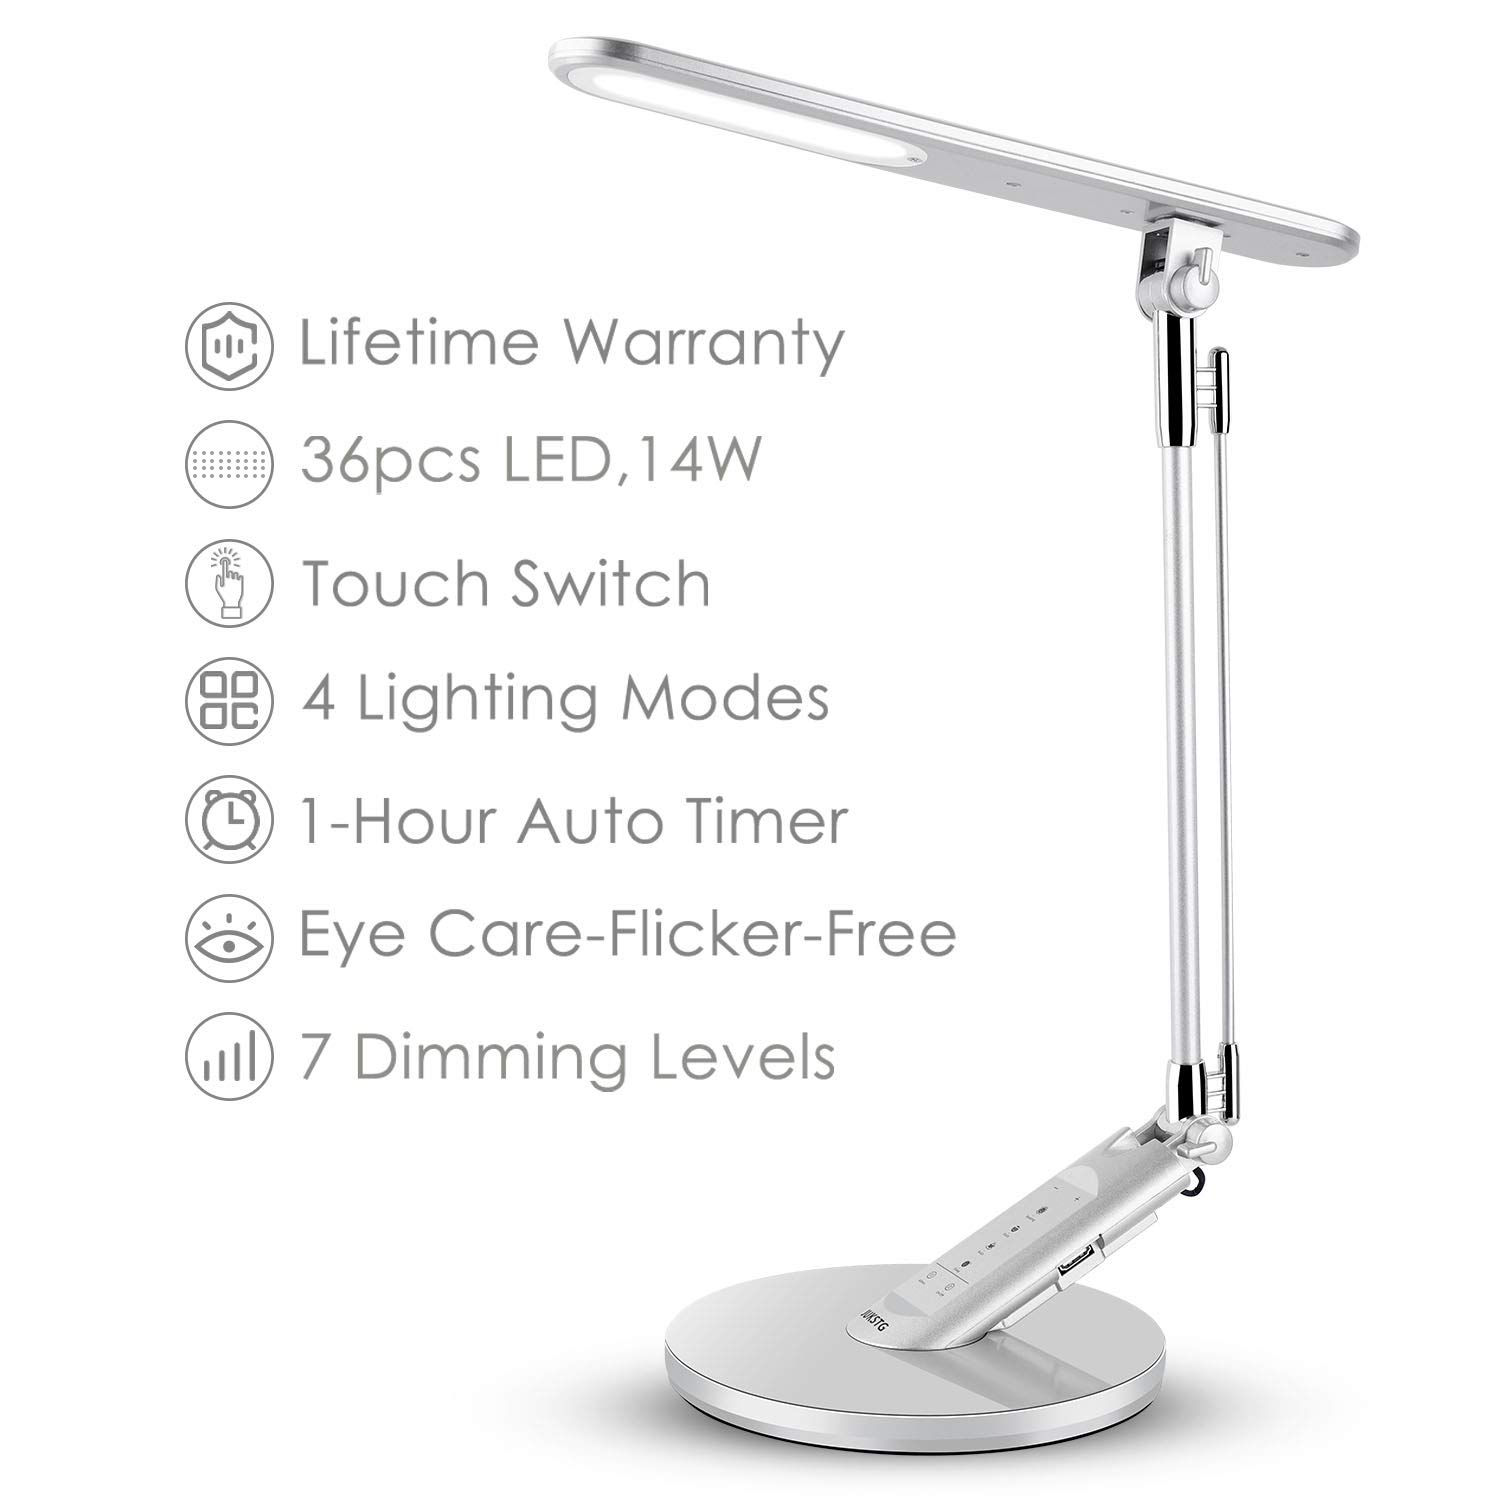 JUKSTG Desk Lamp, 36pcs LEDs 14W 7 Dimming Levels Table Lamps with 4 Lighting Modes, Folding Led Desk Lamps, 1-Hour Auto Timer, USB Charging Port, Touch-Sensitive Control, 5V Reading Lamps, Silver